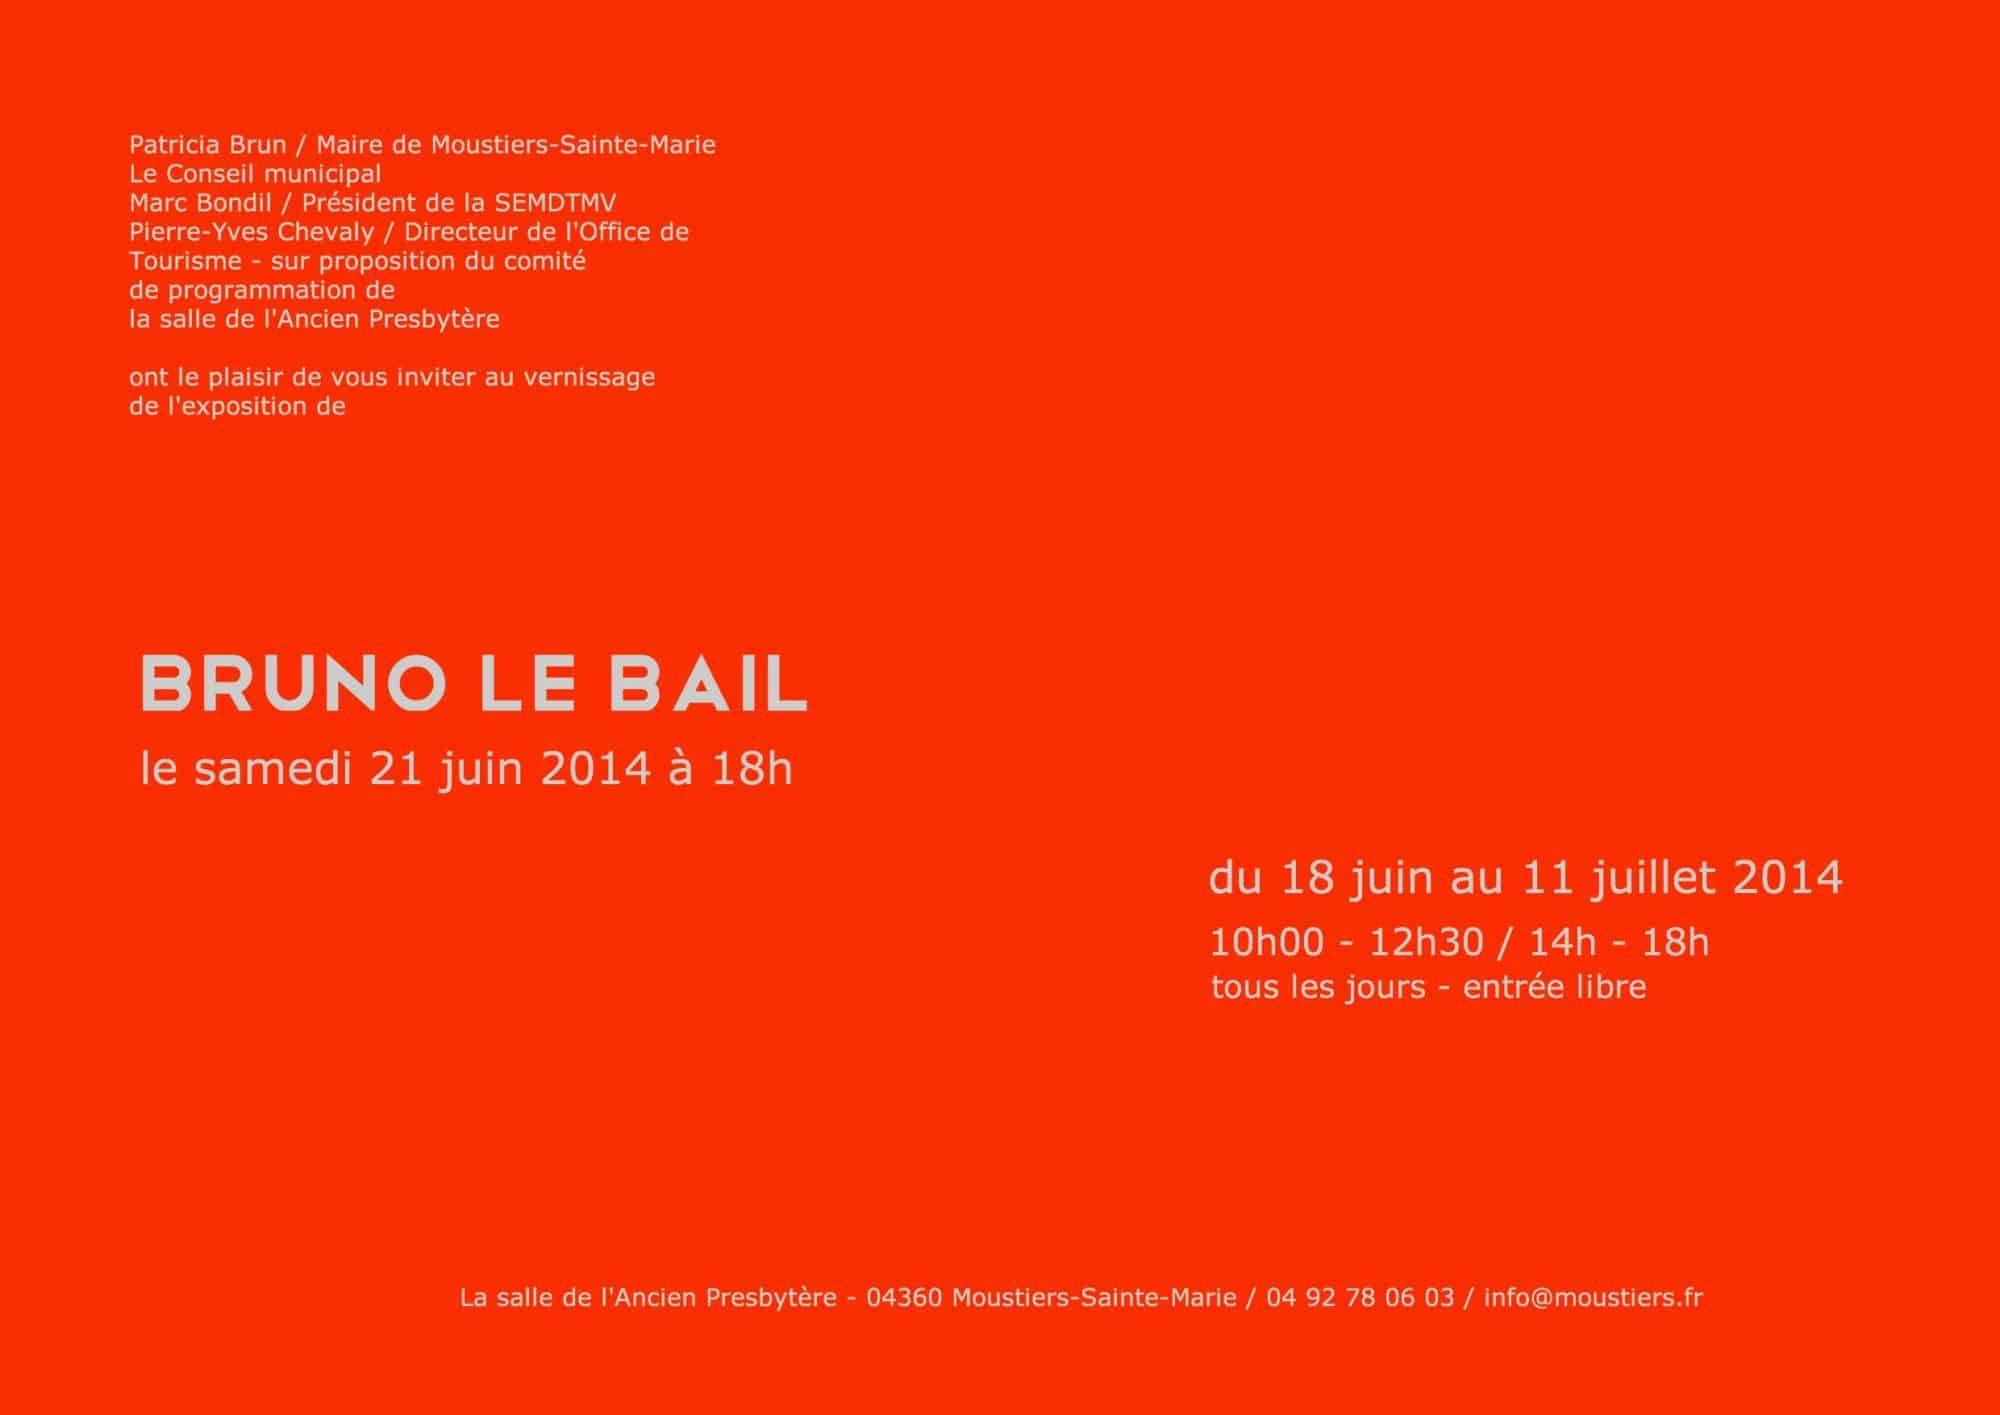 Exposition Bruno Le Bail Moustiers Sainte-Marie